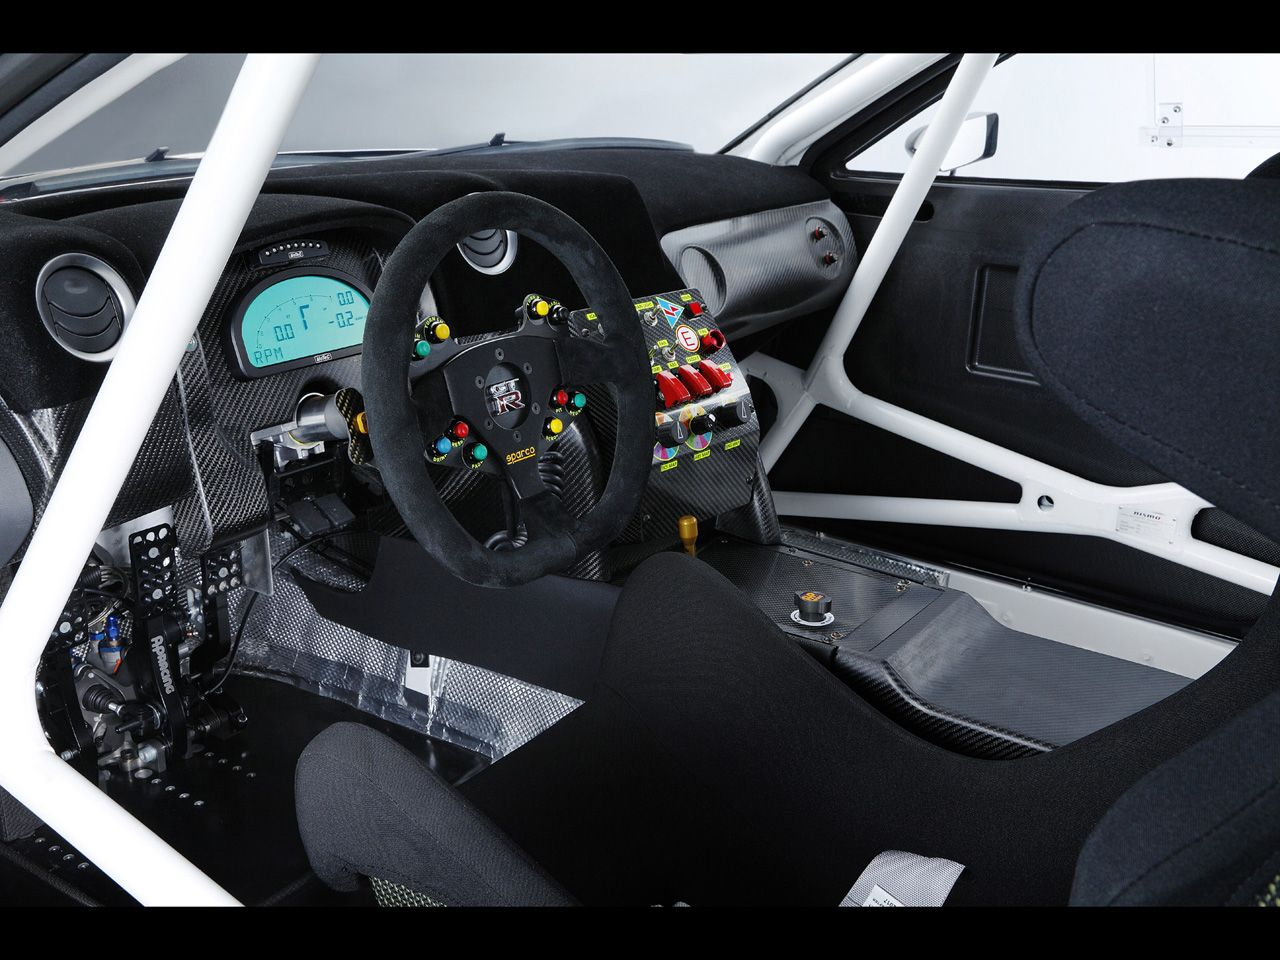 2013 nissan gt r nismo gt3 cockpit 1280x960 wallpaper 2013 nissan gt r nismo gt3 cockpit 1280x960 wallpaper vanachro Image collections